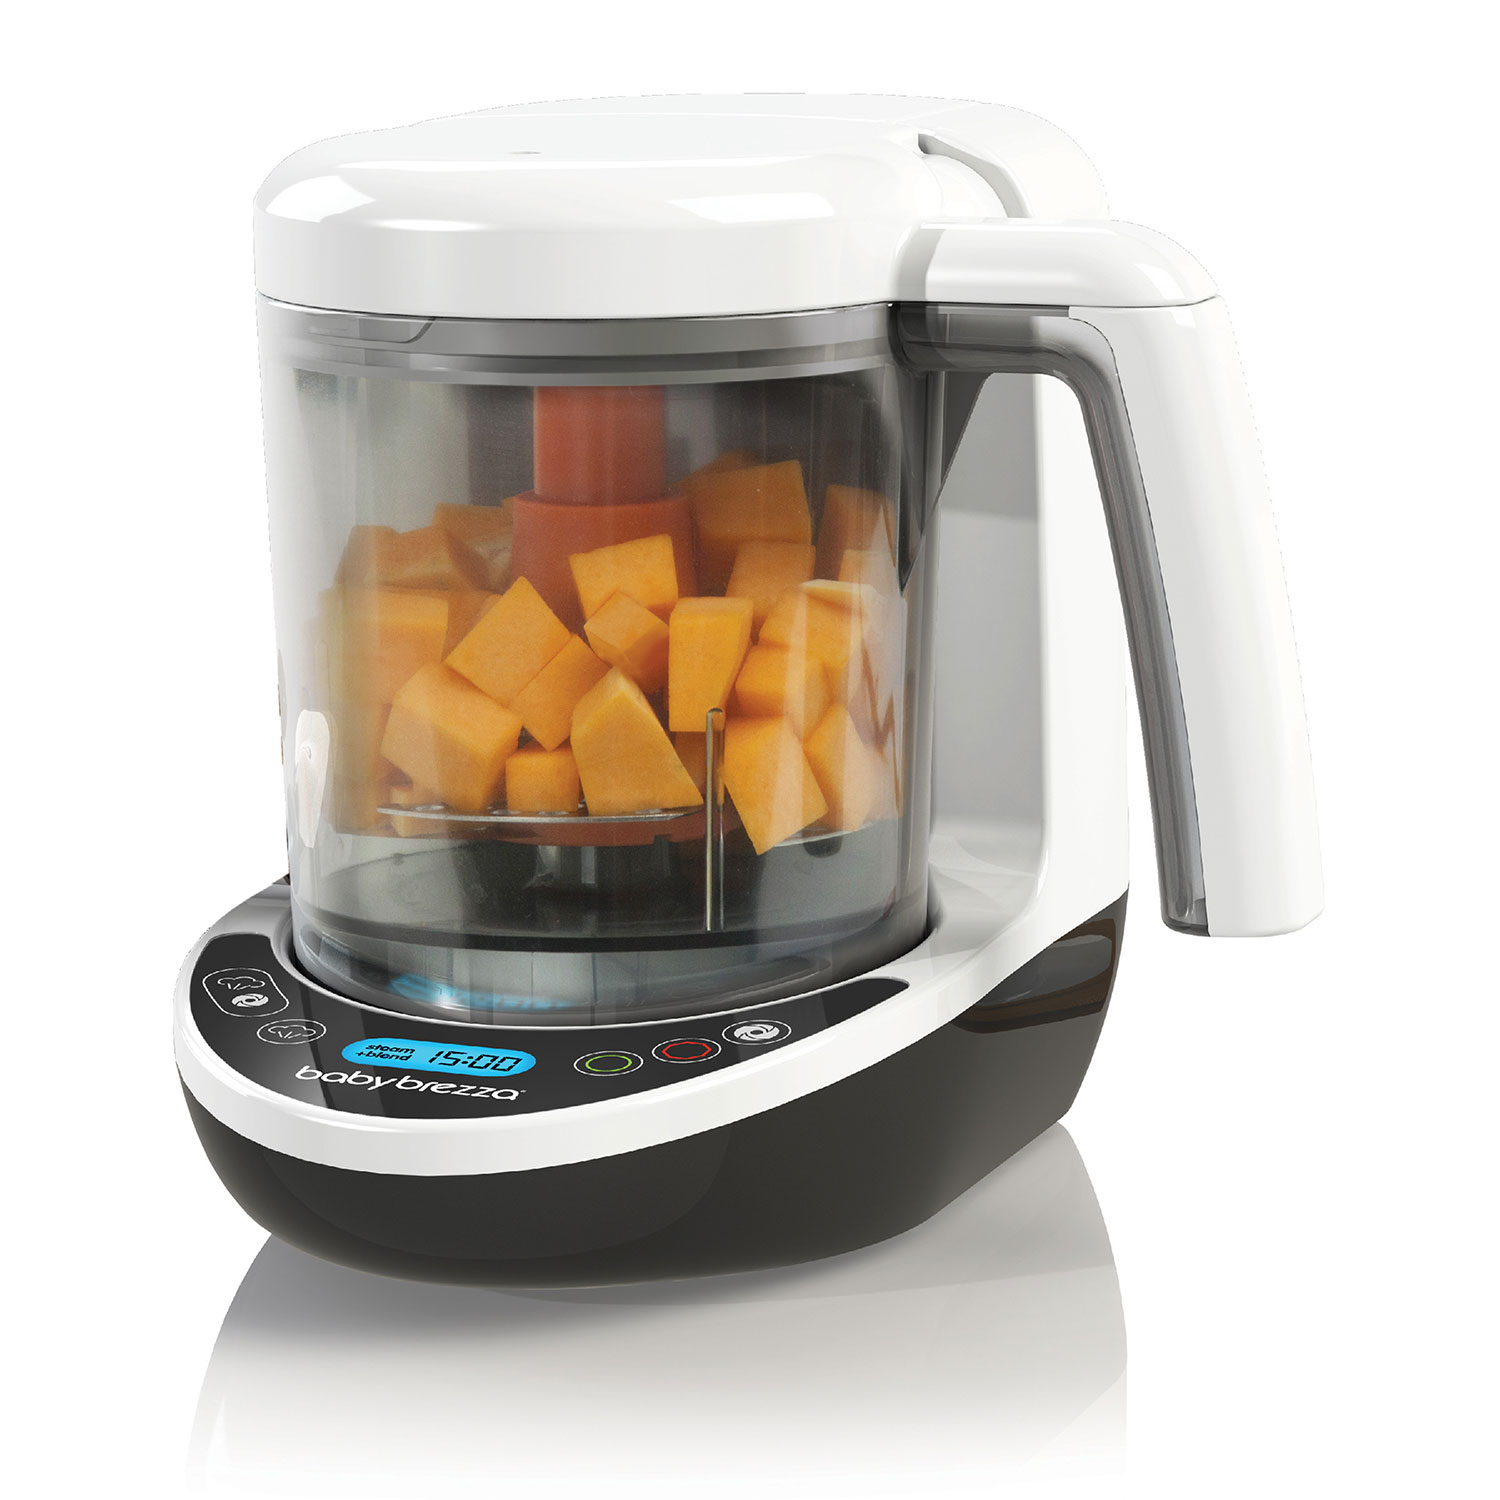 baby brezza overview - baby brezza food maker complete